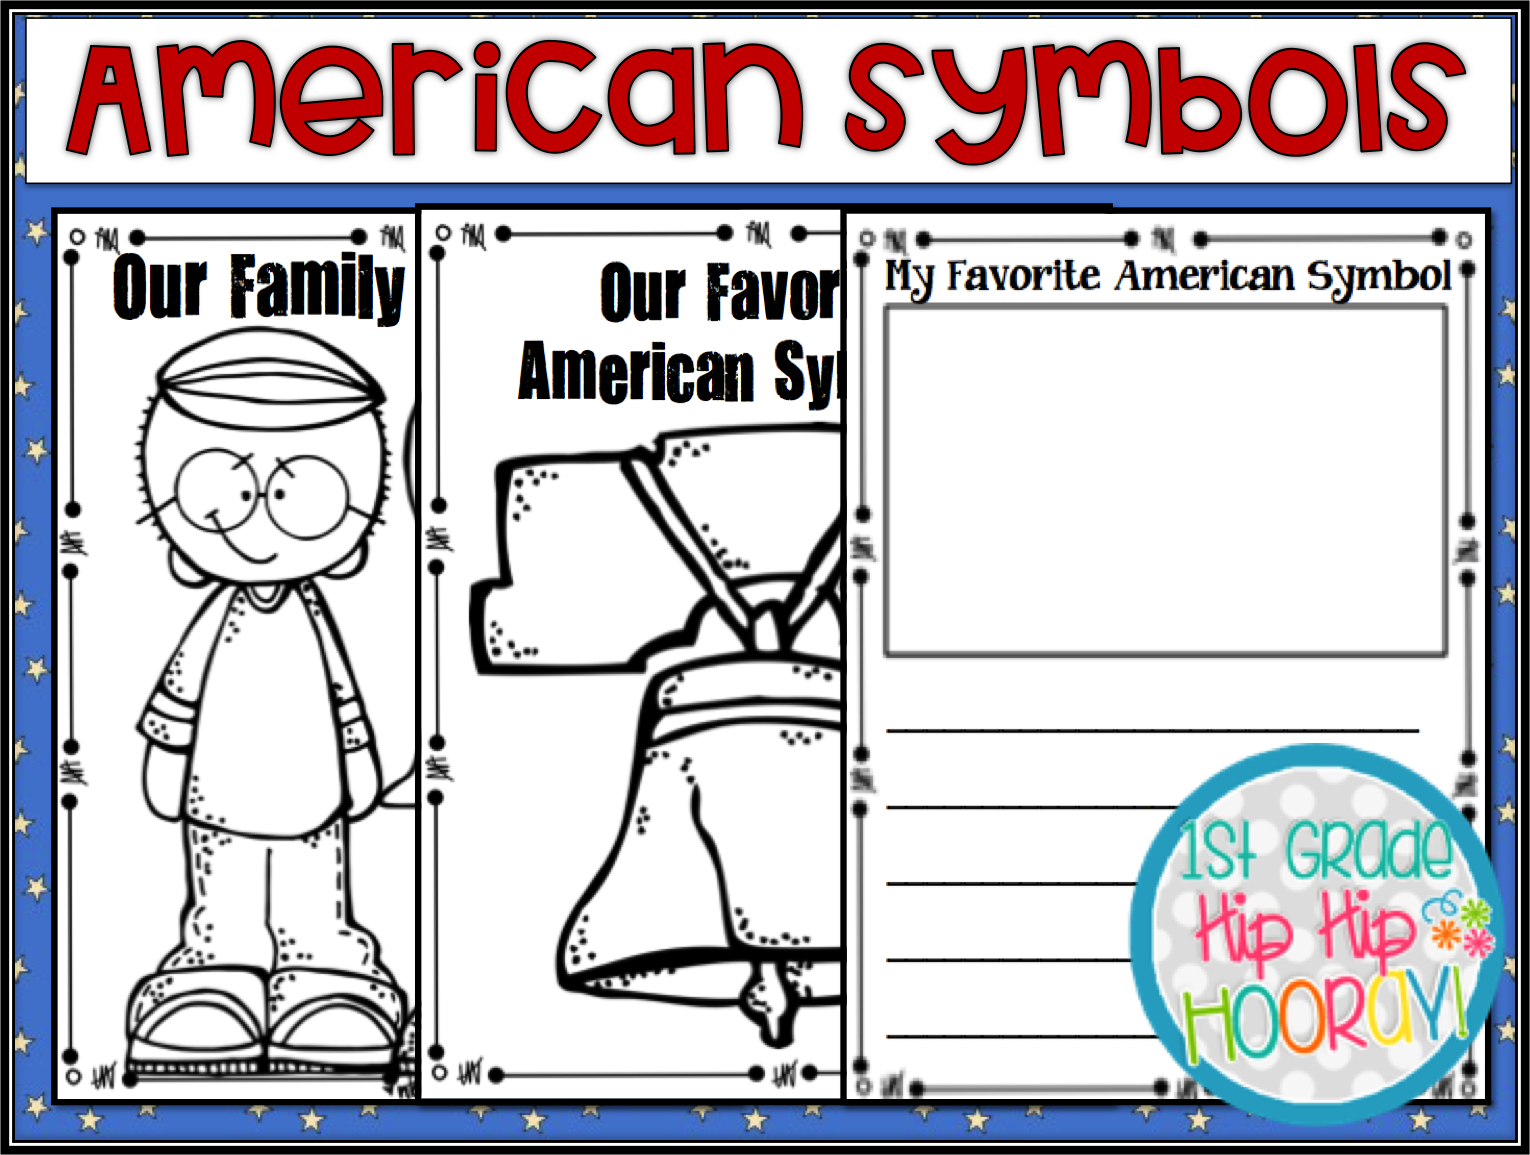 Worksheets American Symbols 1st Grade   Printable Worksheets and Activities  for Teachers [ 1155 x 1530 Pixel ]